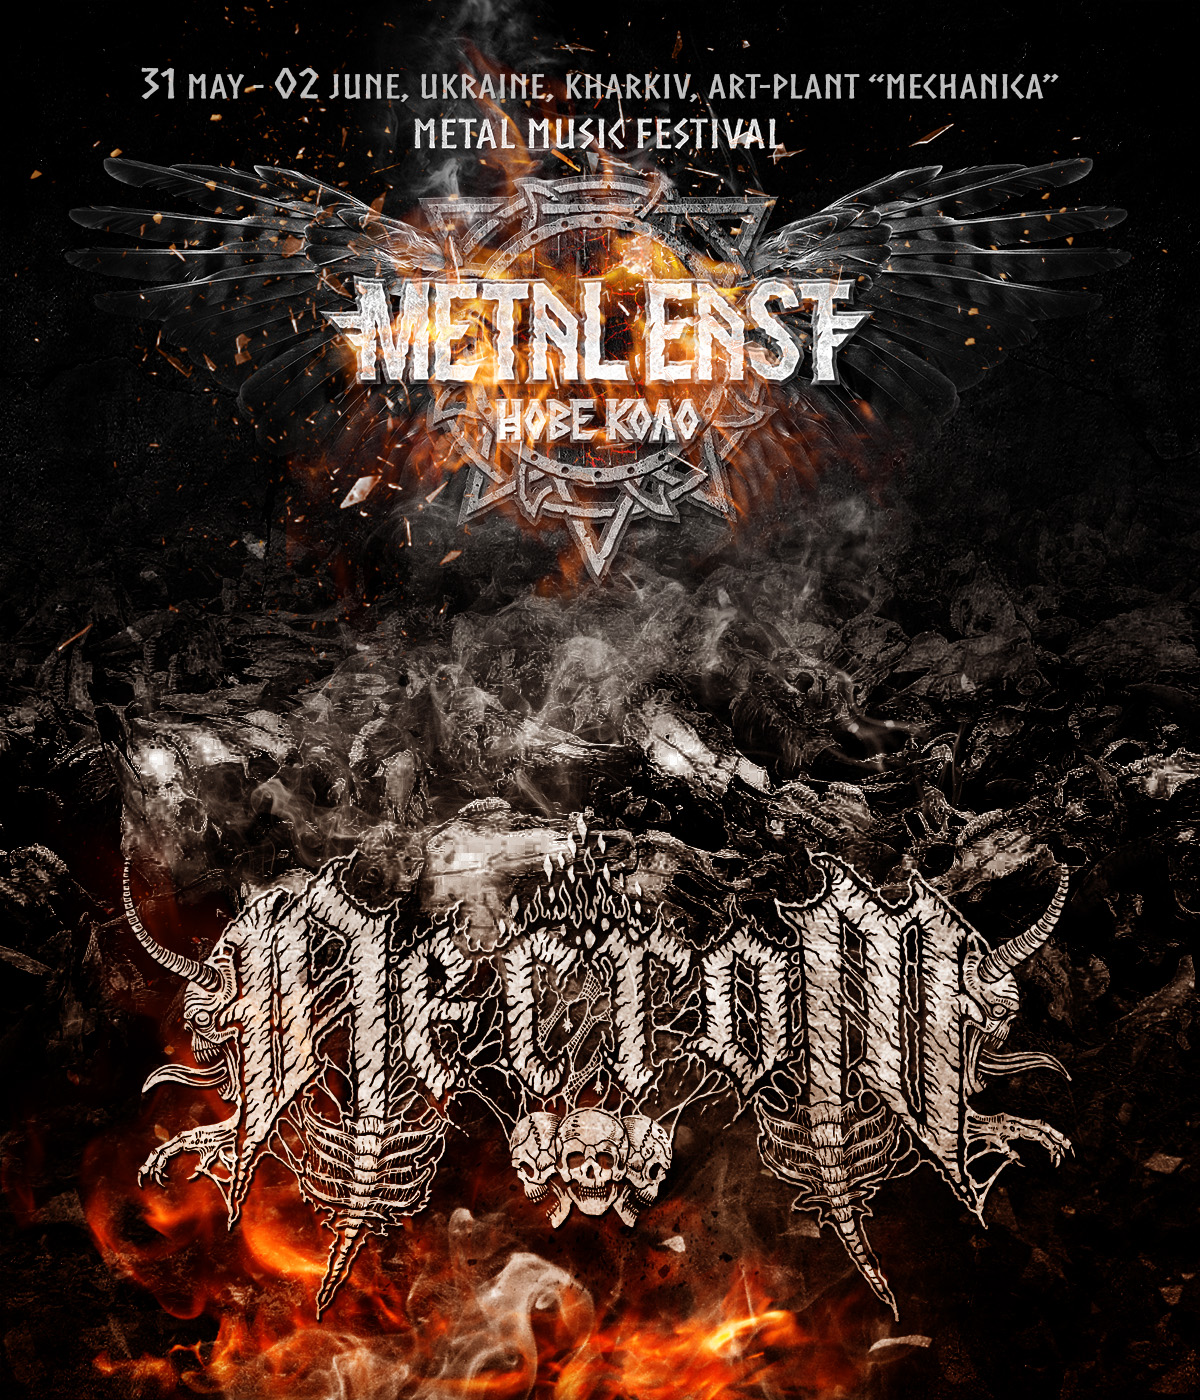 NECROM first show at Metal East Nove Kolo festival from May 31st to June 2nd of 2019 in Kharkiv, Ukraine